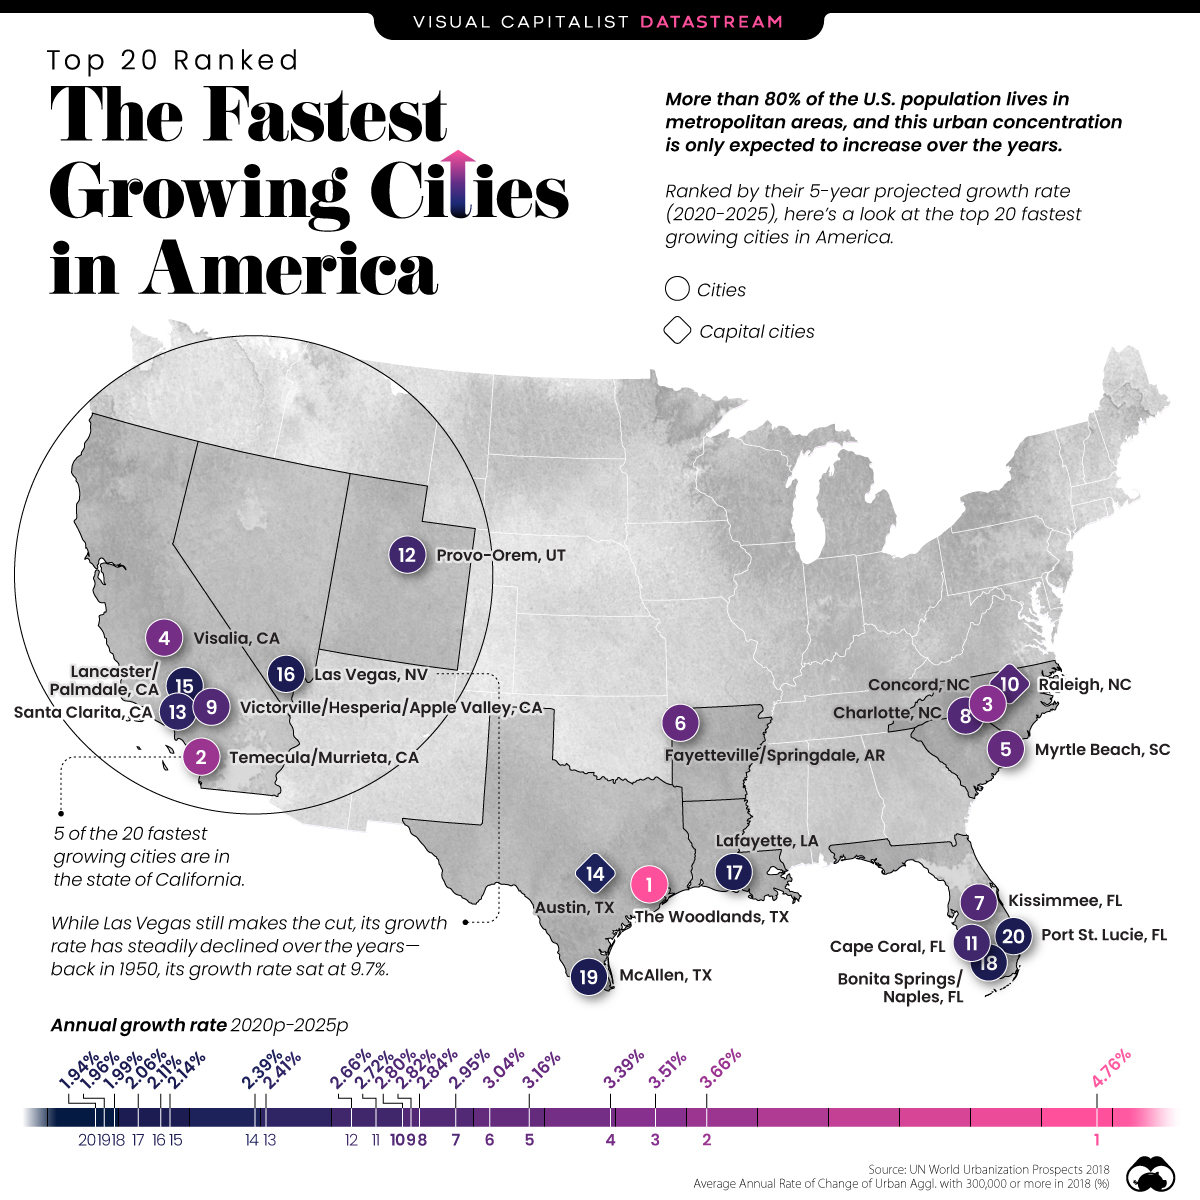 The Fastest Growing Cities in the U.S.